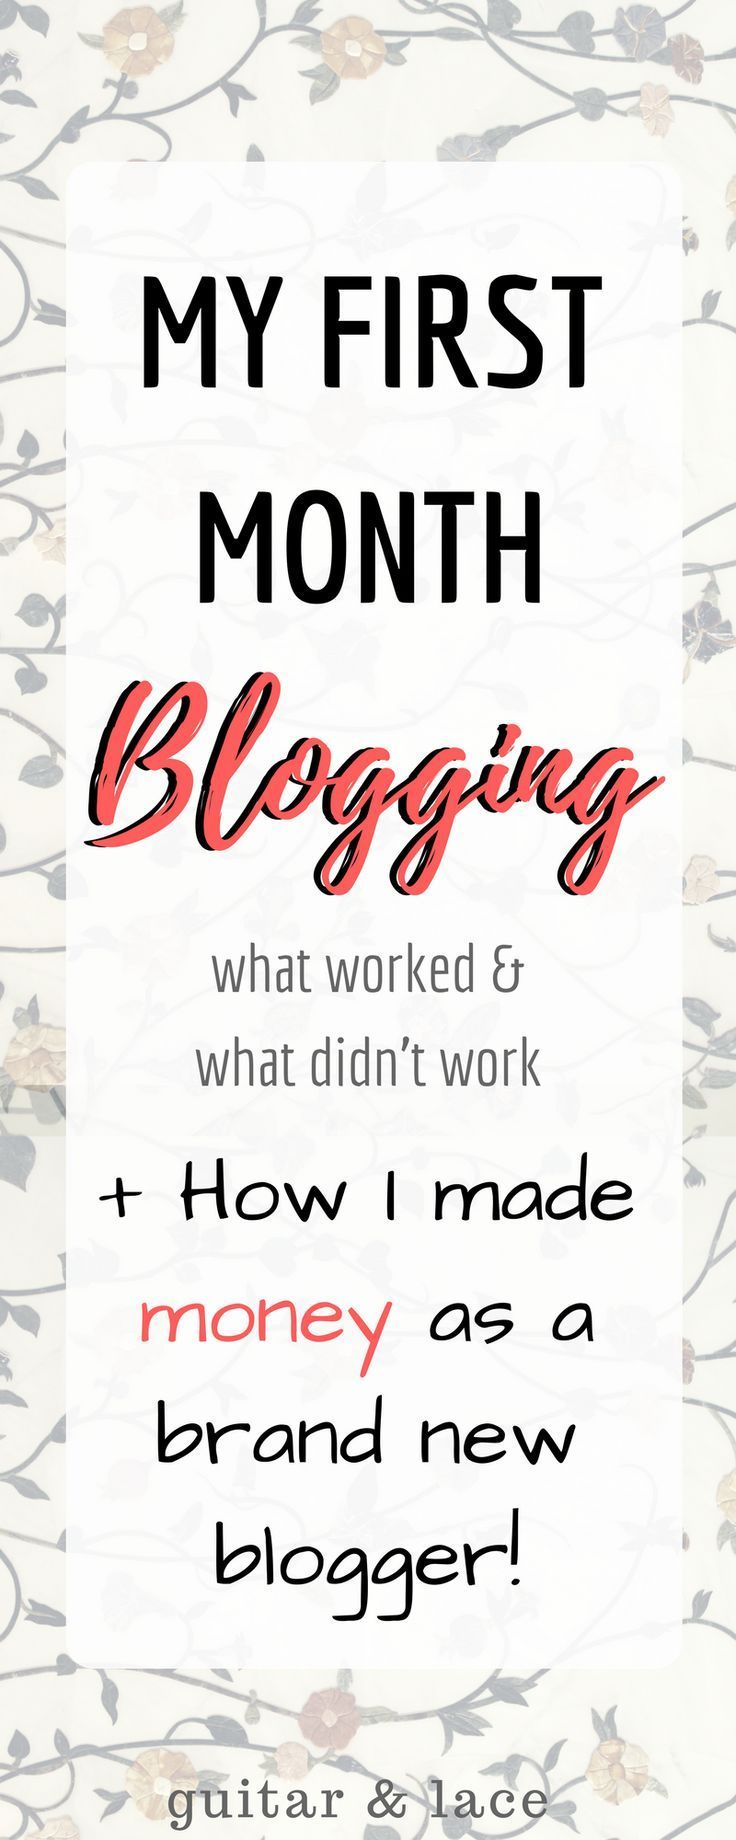 After my first month of blogging I have gained more views, followers and even made money! If I can do it, anyone can do it!